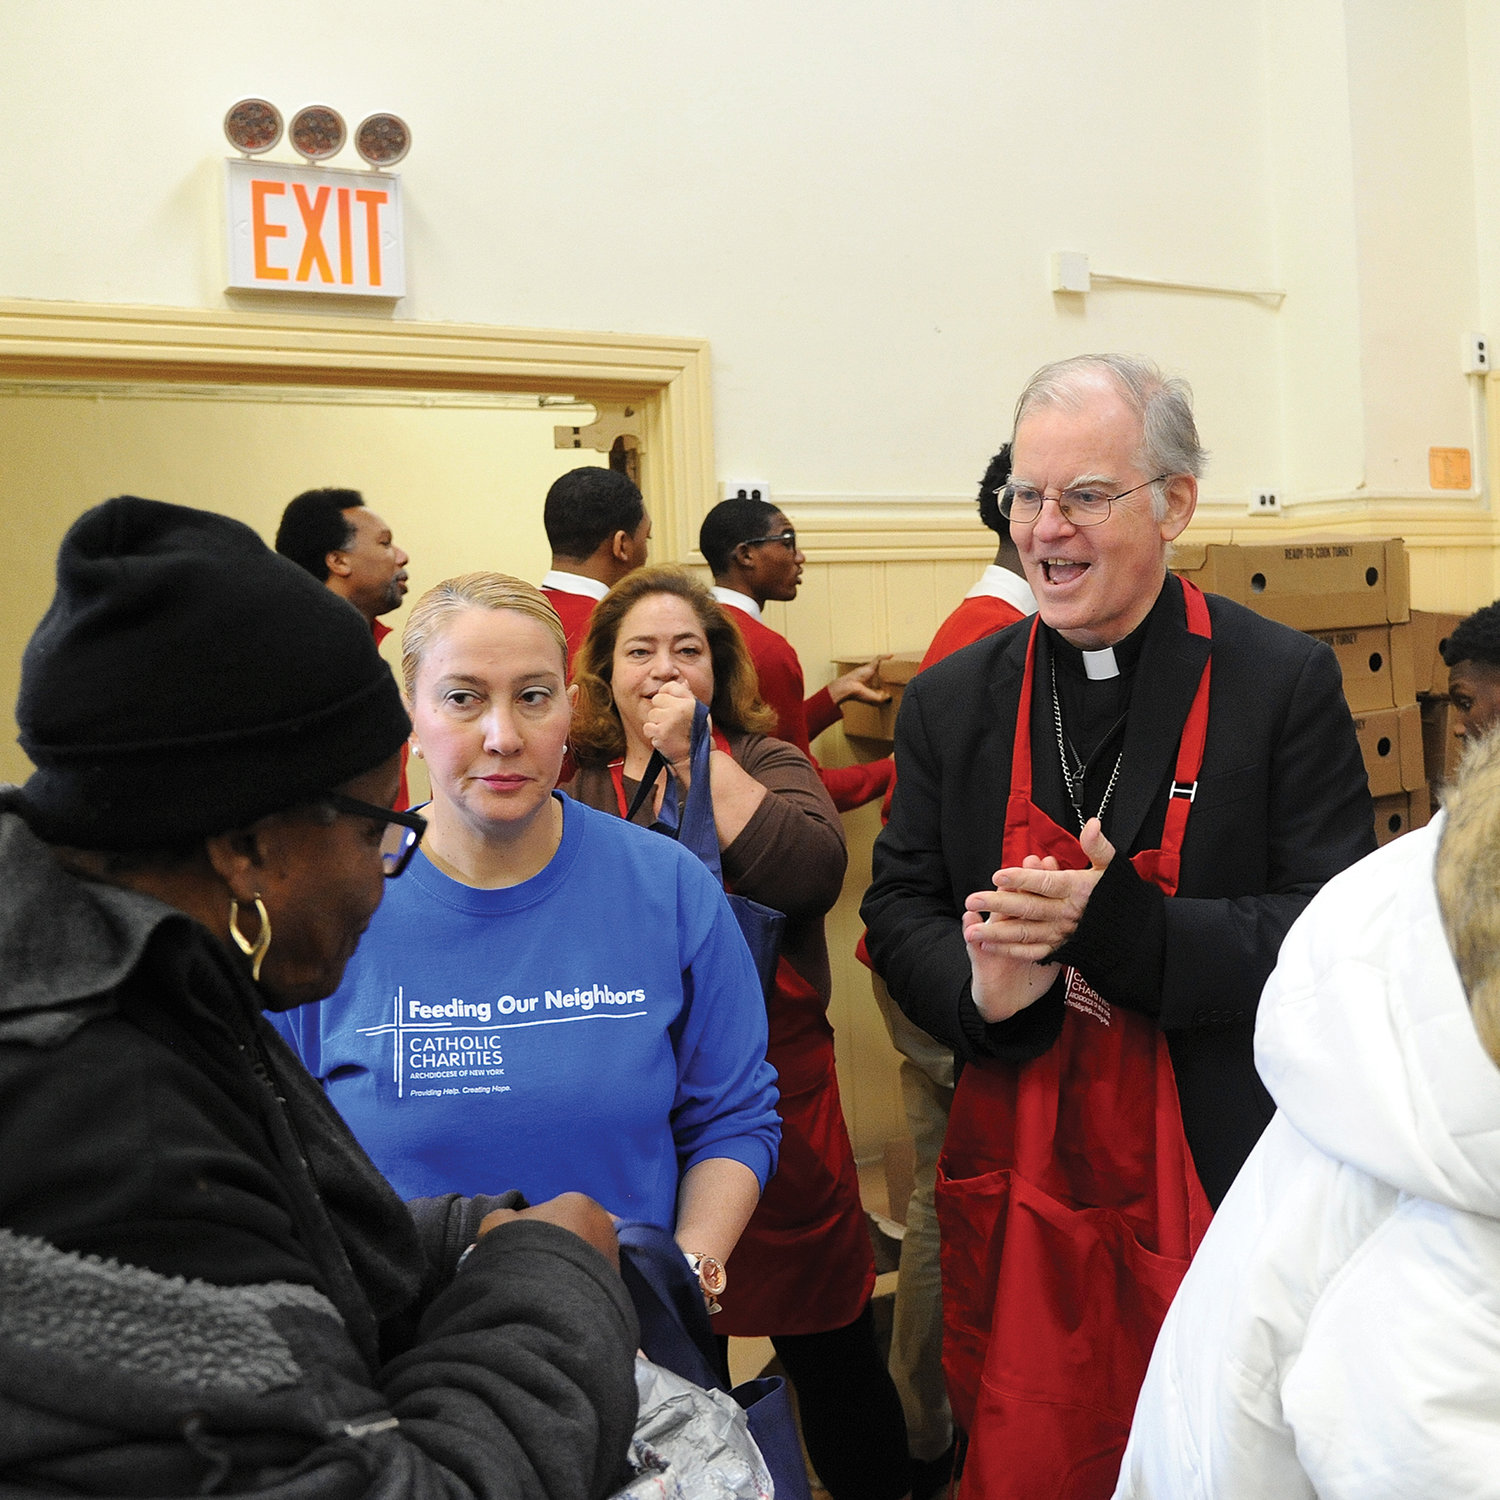 Auxiliary Bishop Peter Byrne led the distribution of 800 Thanksgiving turkeys to families in need two days before Thanksgiving Nov. 26 at the Lt. Joseph P. Kennedy Community Center in Harlem. (The bishop was substituting for Cardinal Dolan, who was offering a Funeral Mass for Alfred E. Smith IV at St. Patrick's Cathedral.) Yams, potatoes and apples completed the full menu given out at the annual turkey distribution by Catholic Charities of New York.